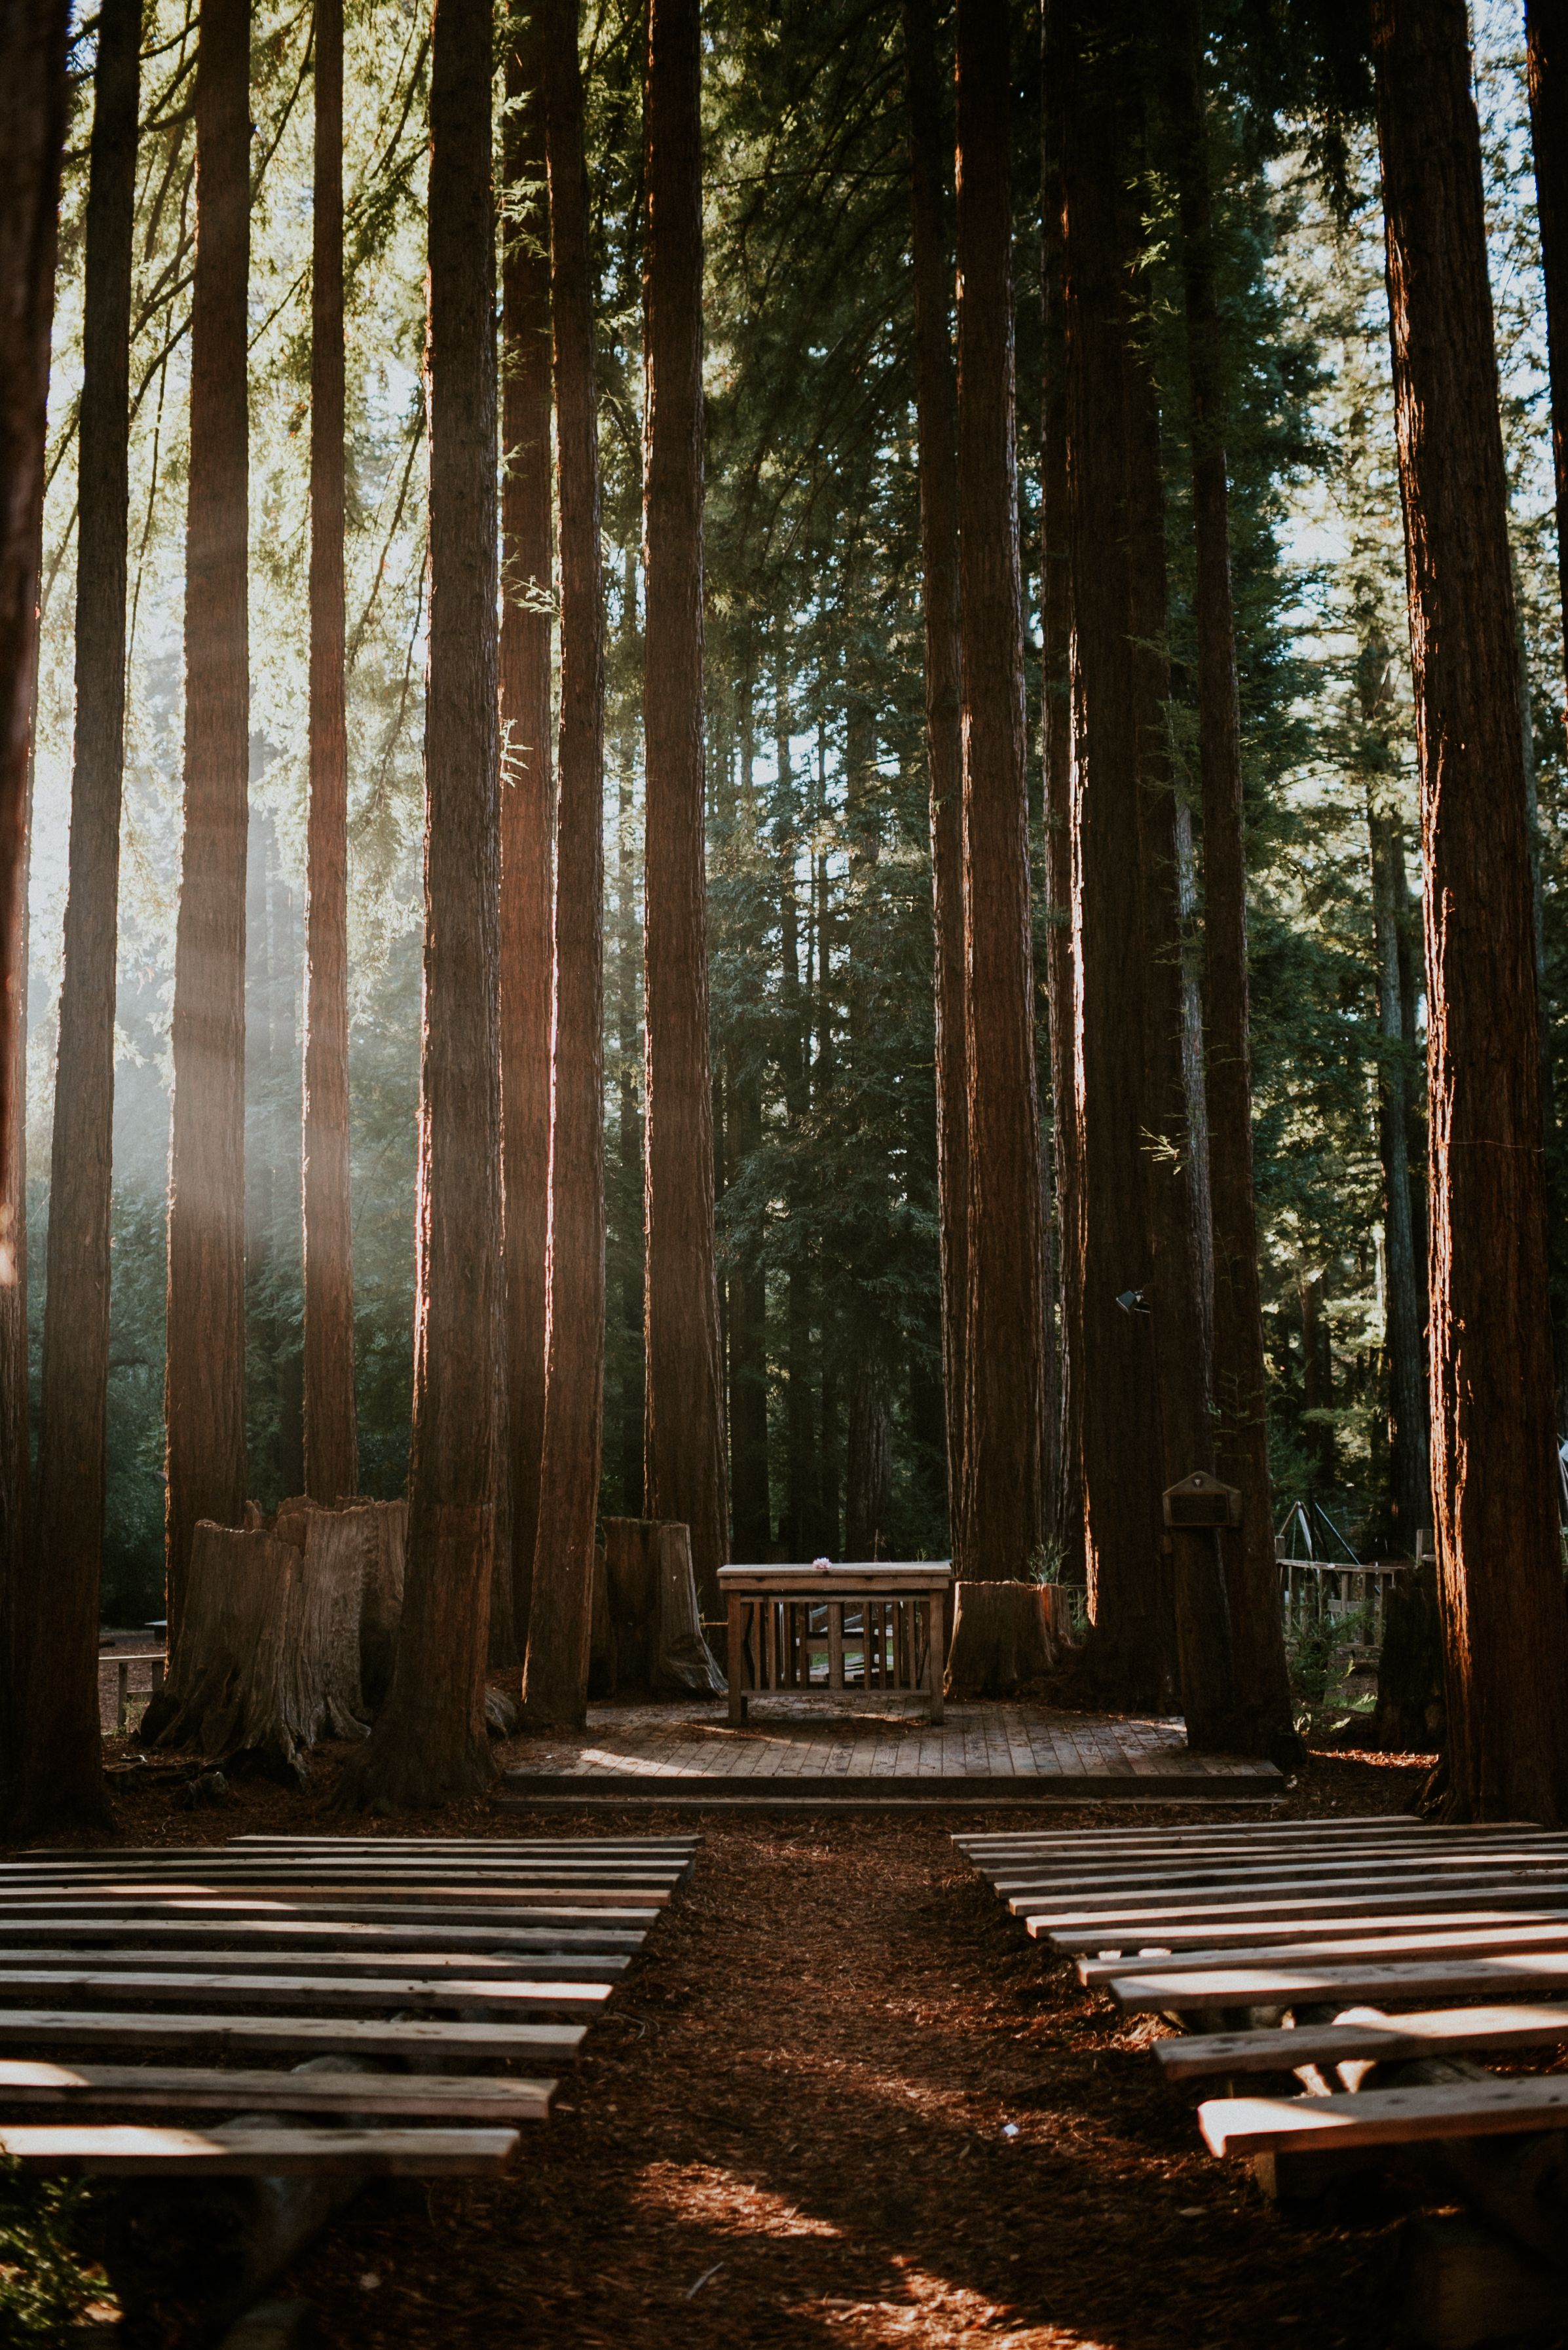 Pin By Shelby Hale On Ymca Camp Campbell Weddings Pinterest Wedding Goals And